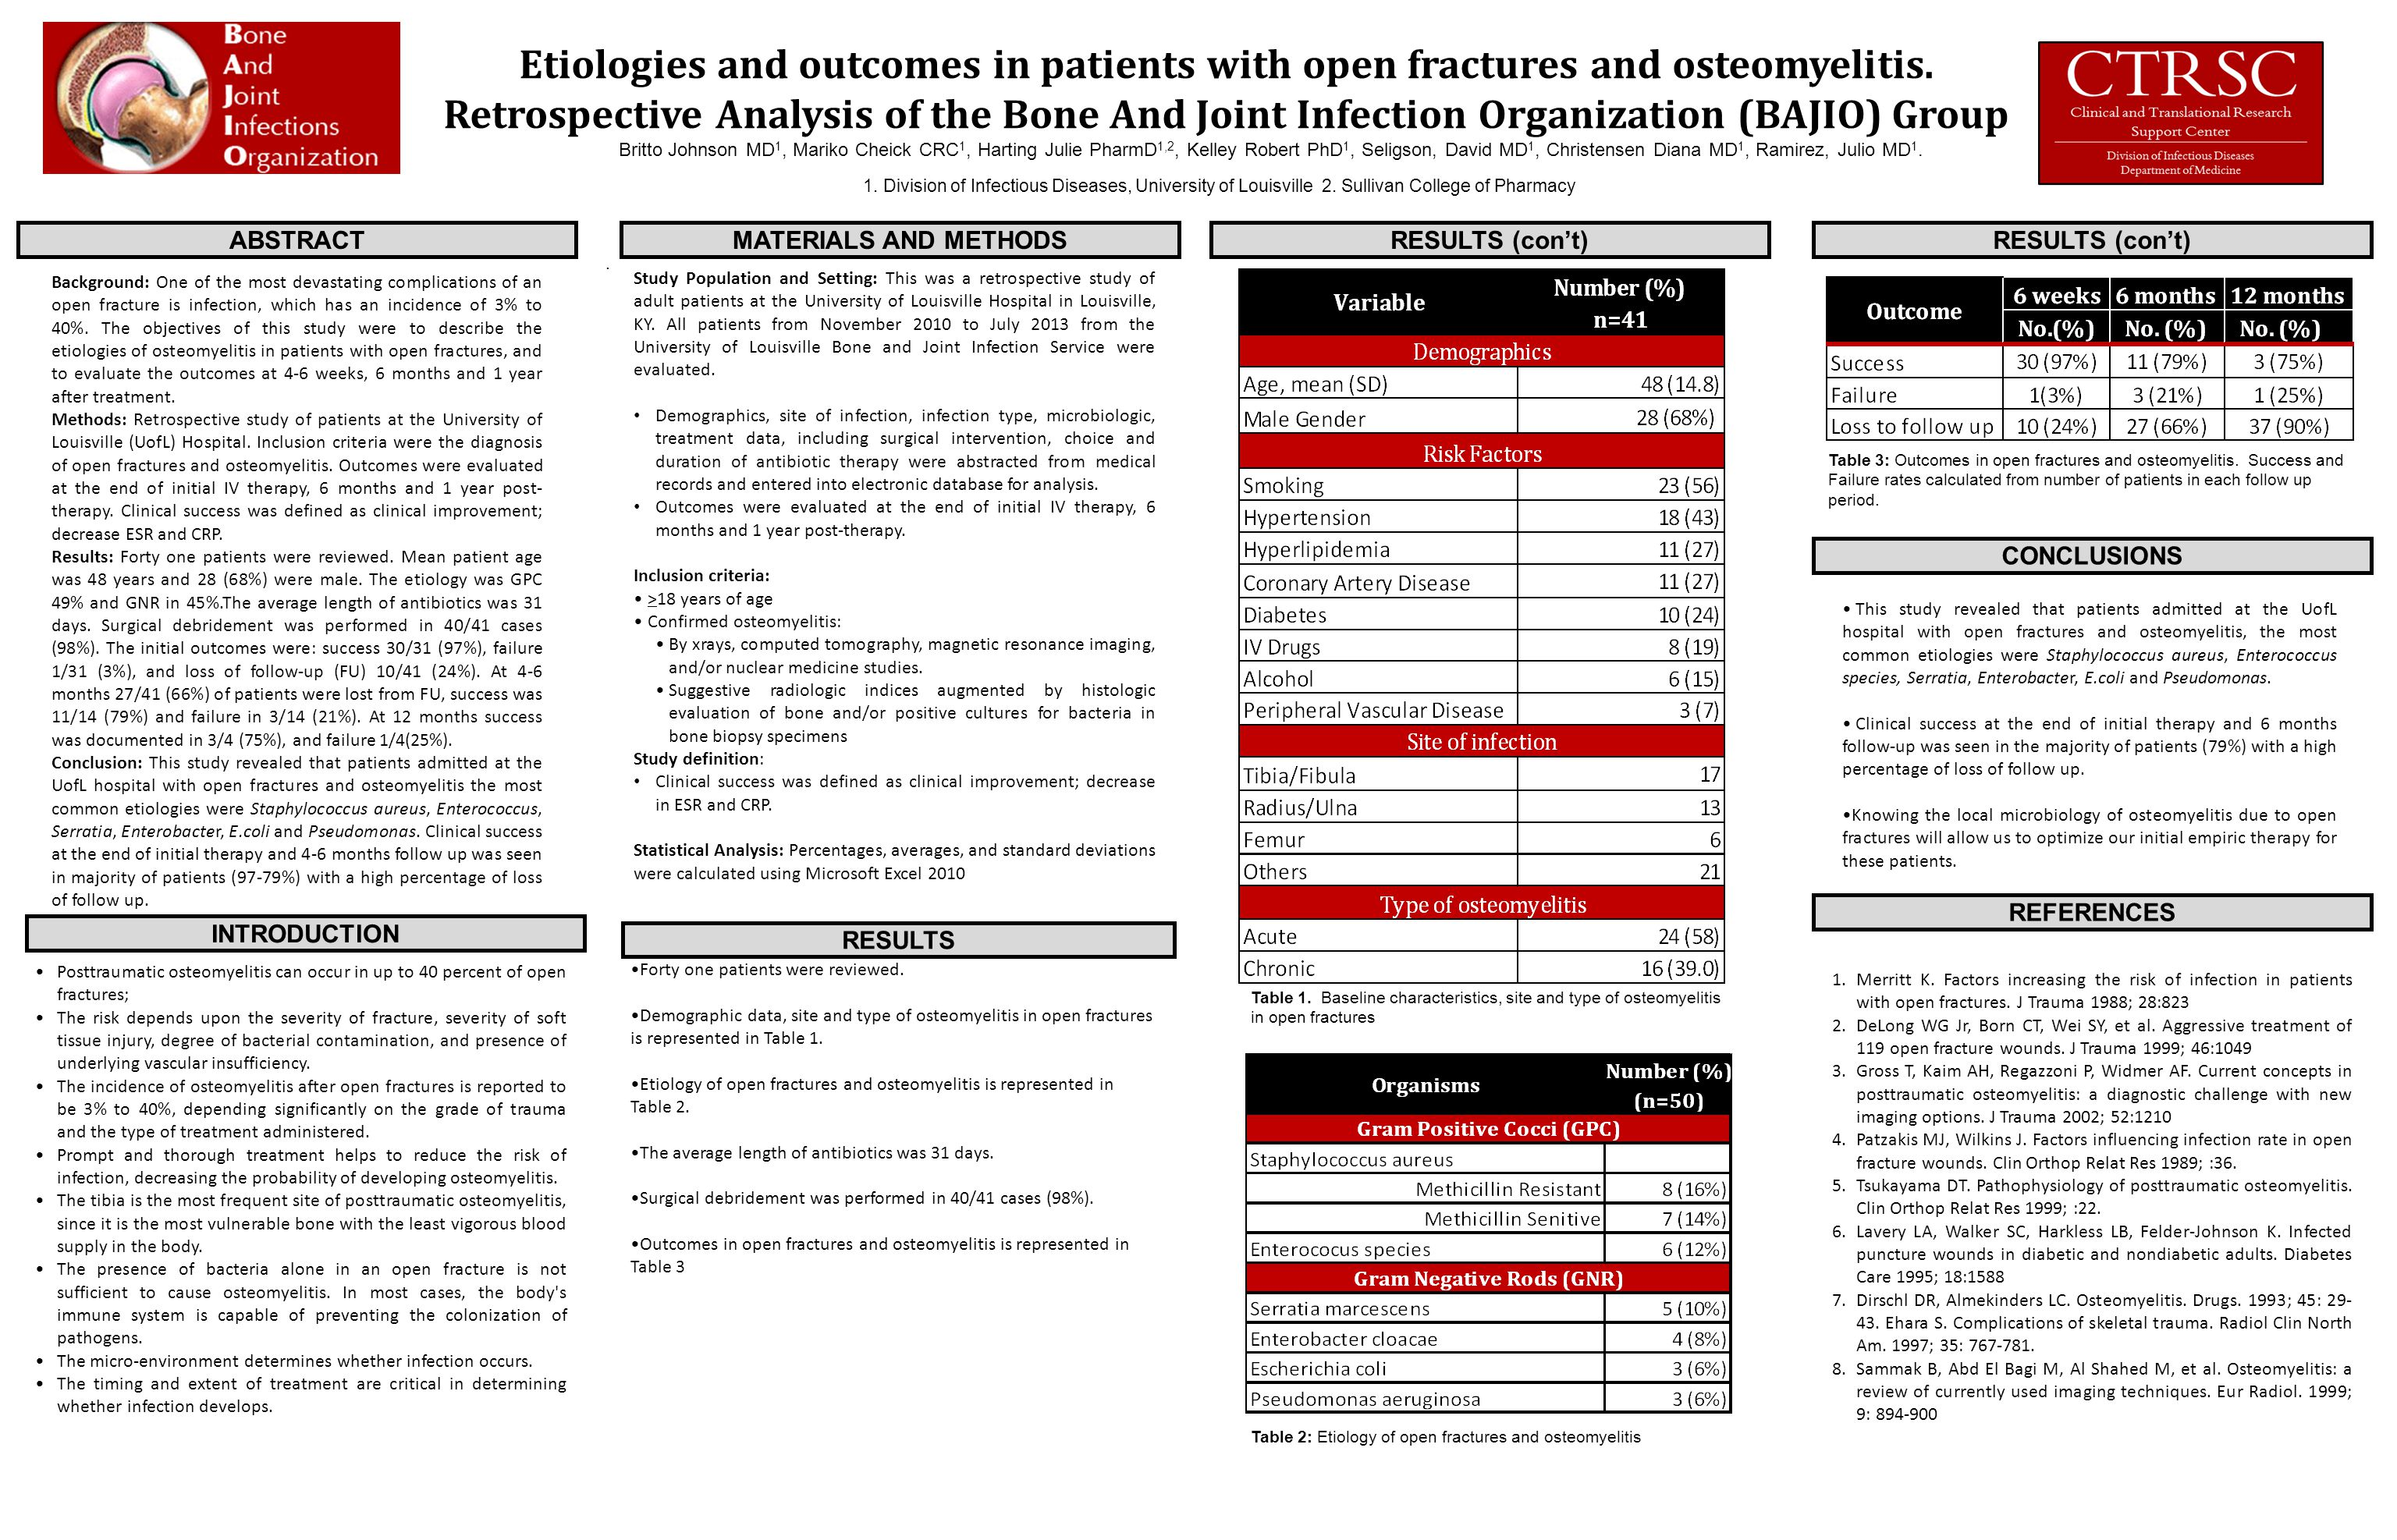 Etiologies and outcomes in patients with open fractures and osteomyelitis.